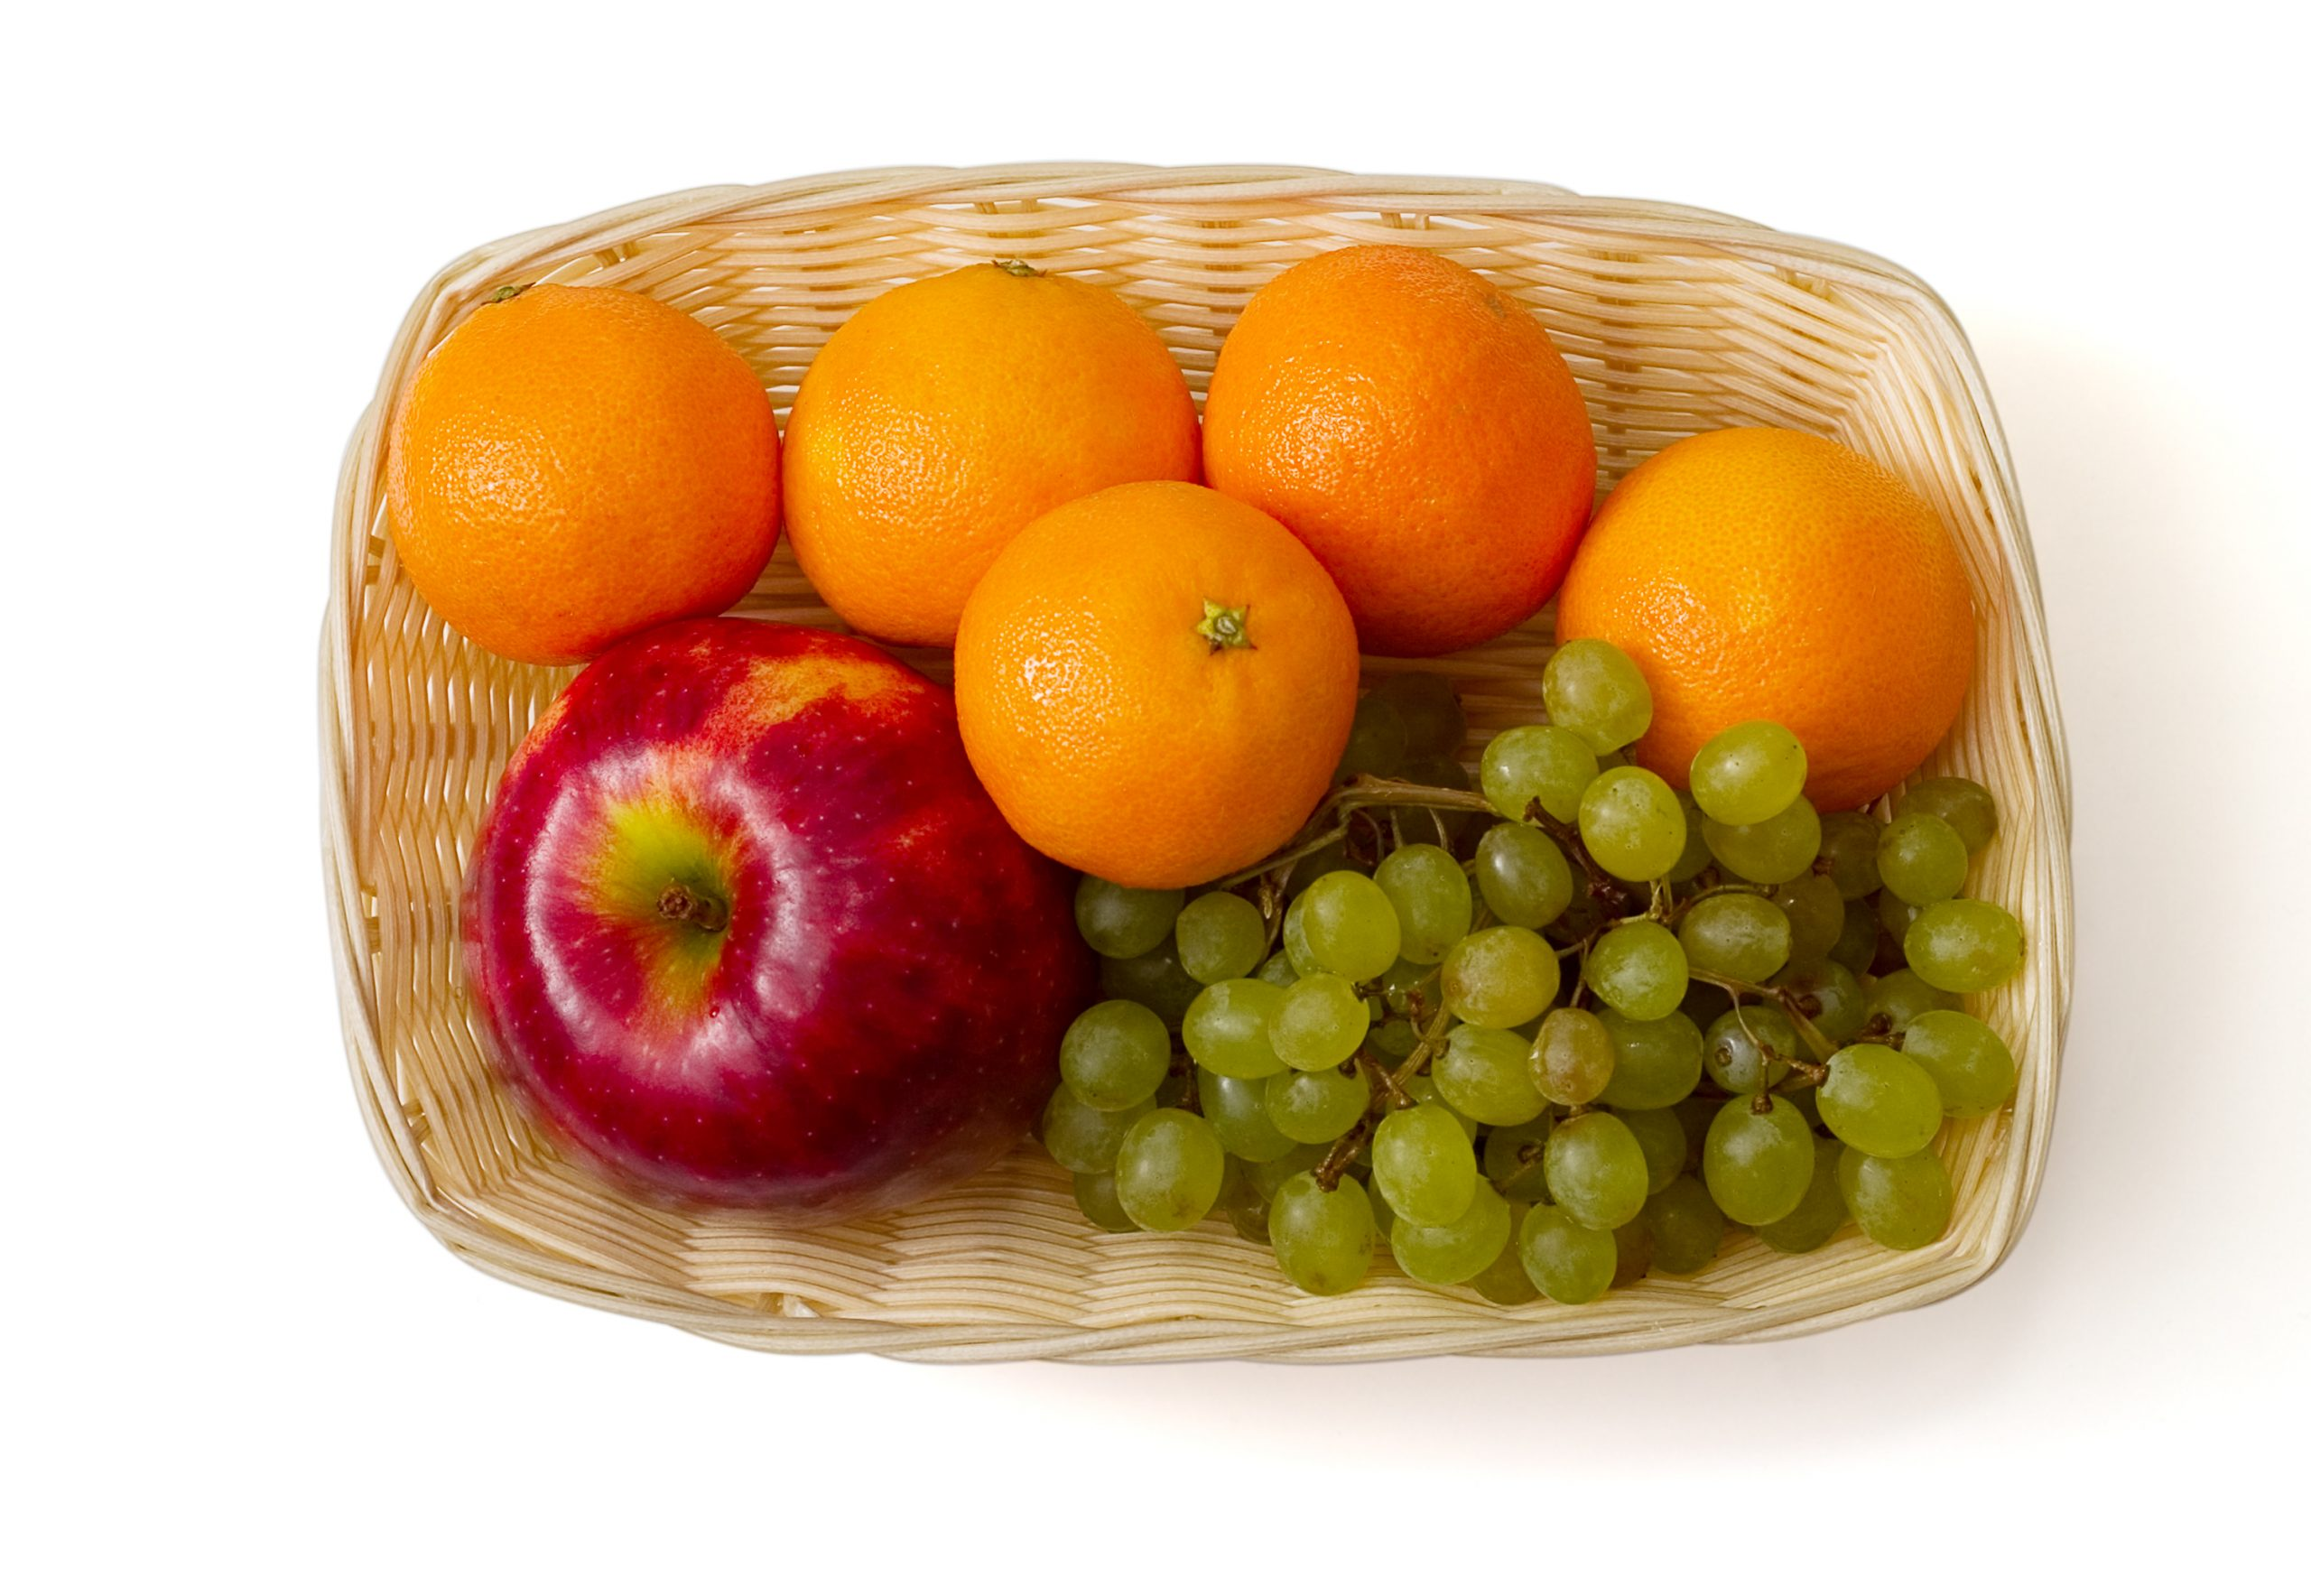 Fruit In a Basket